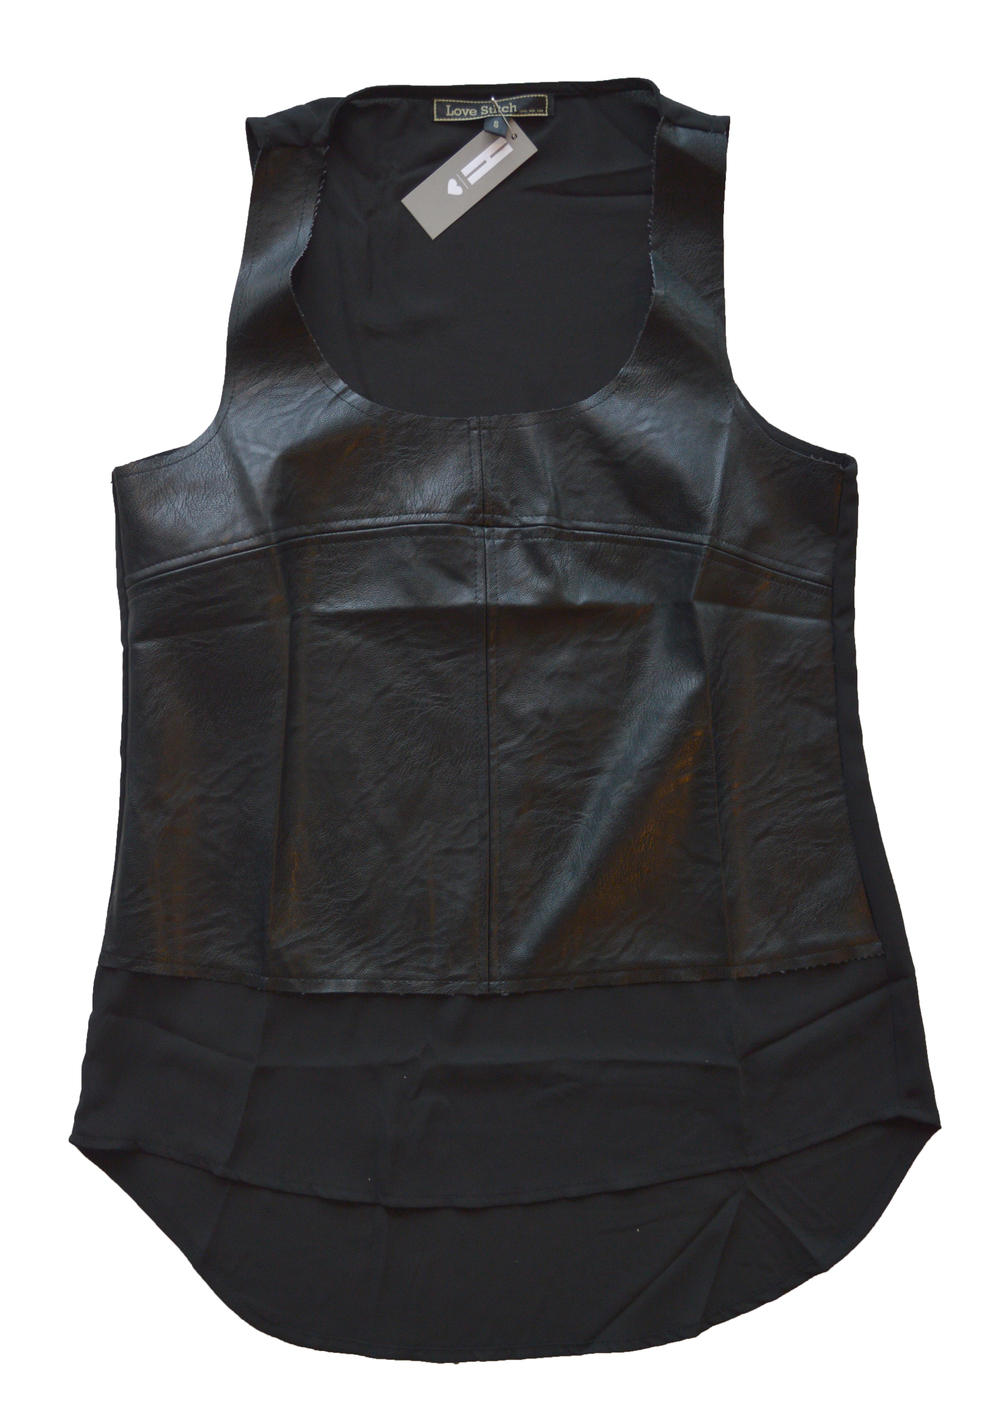 haus love leather top